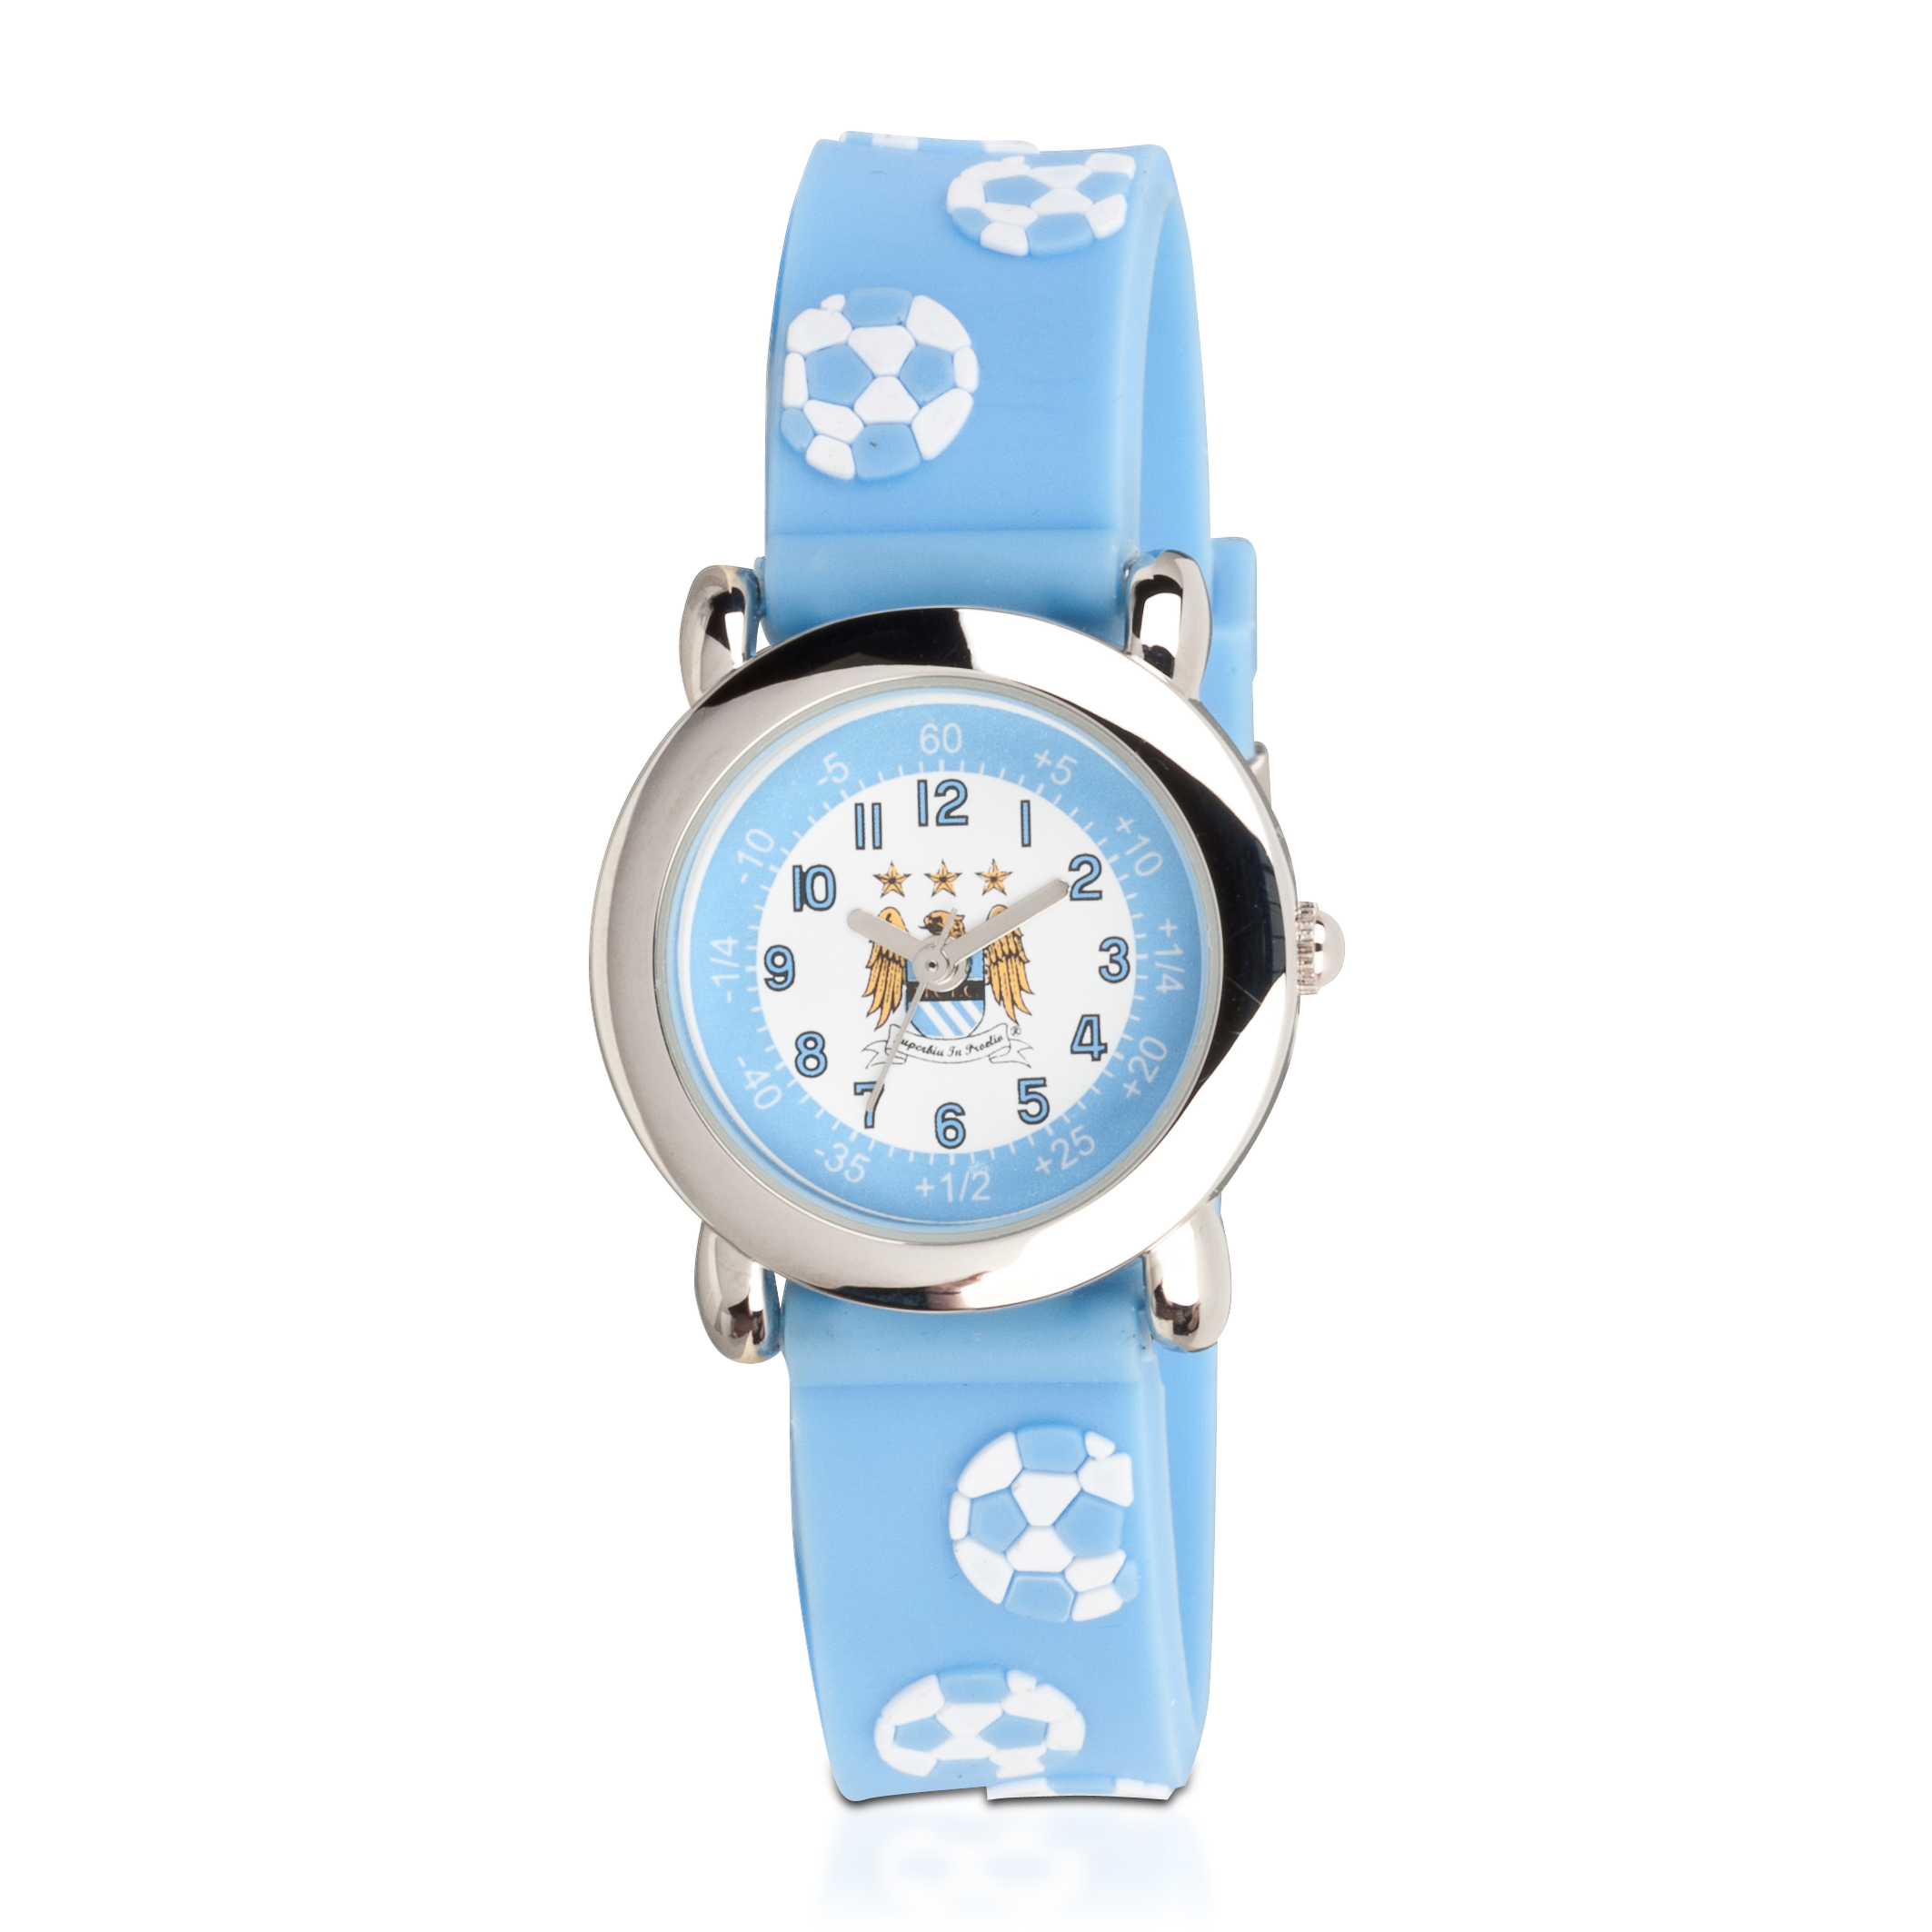 Manchester City Kids Plastic Watch